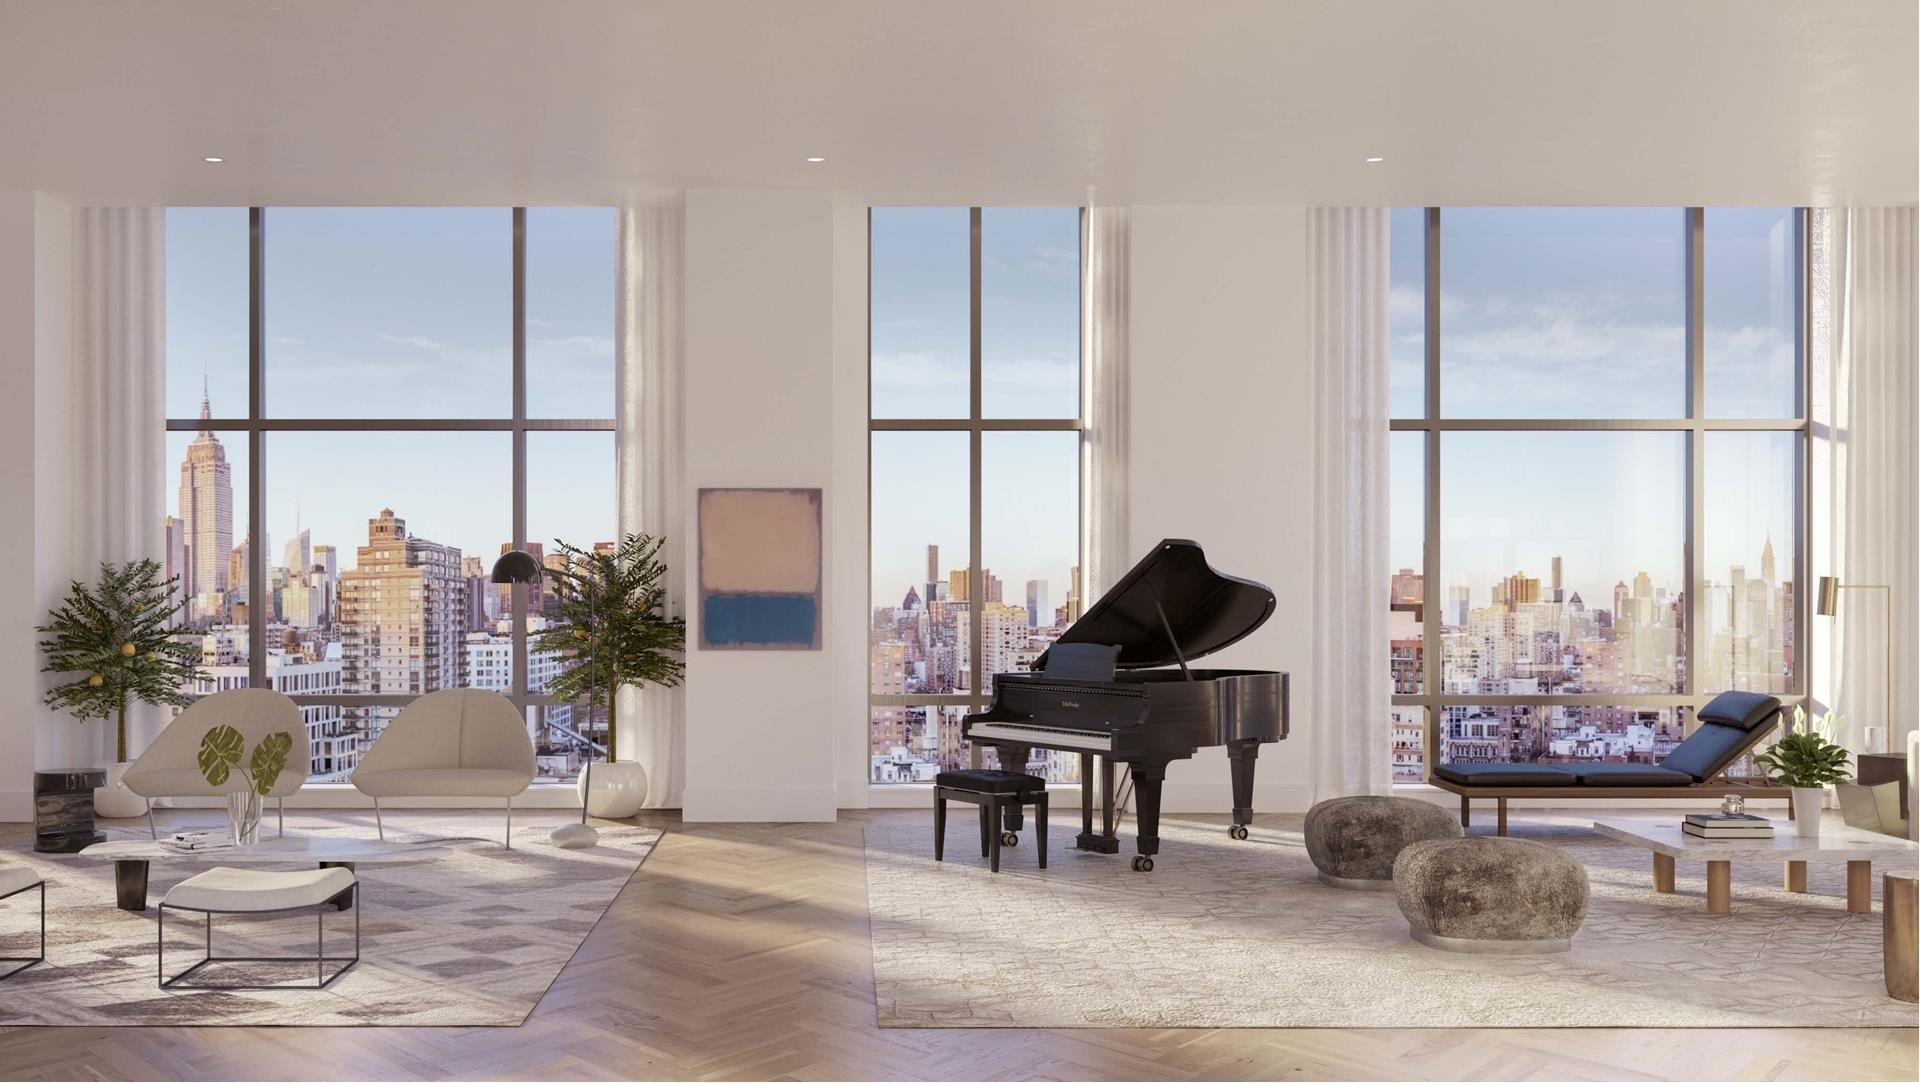 Condominium for Sale at Gramercy Square, 215 East 19th St, 16C Gramercy Park, New York, NY 10003